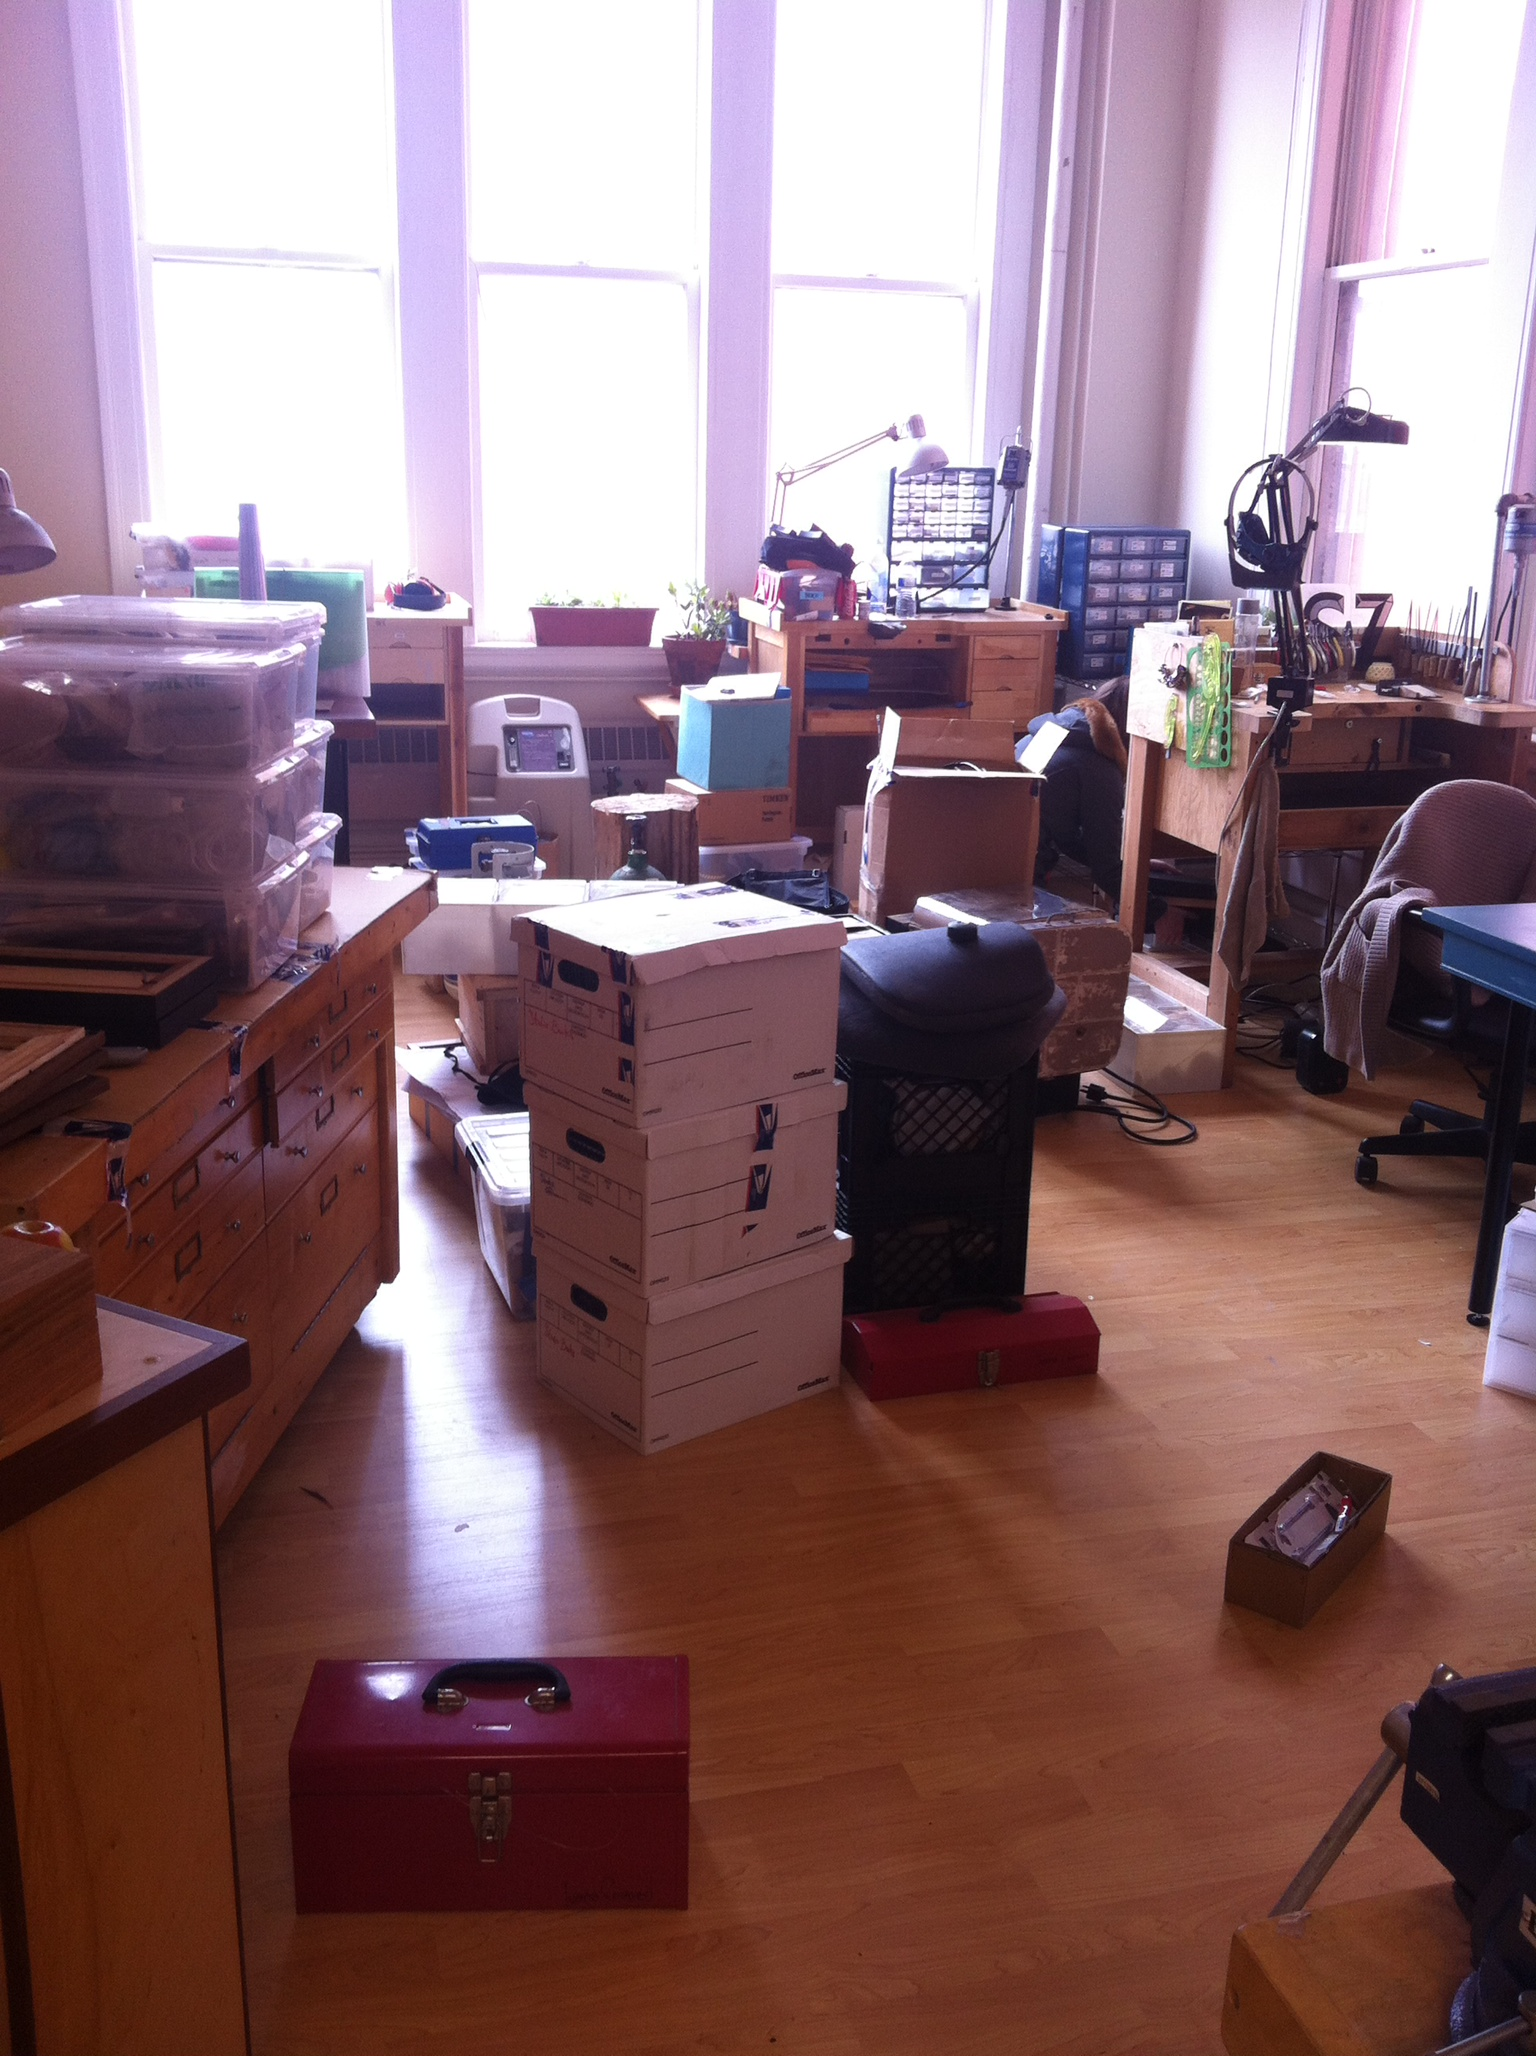 Mounds of unpacked boxes, with Corey Egan hiding somewhere in the pile.